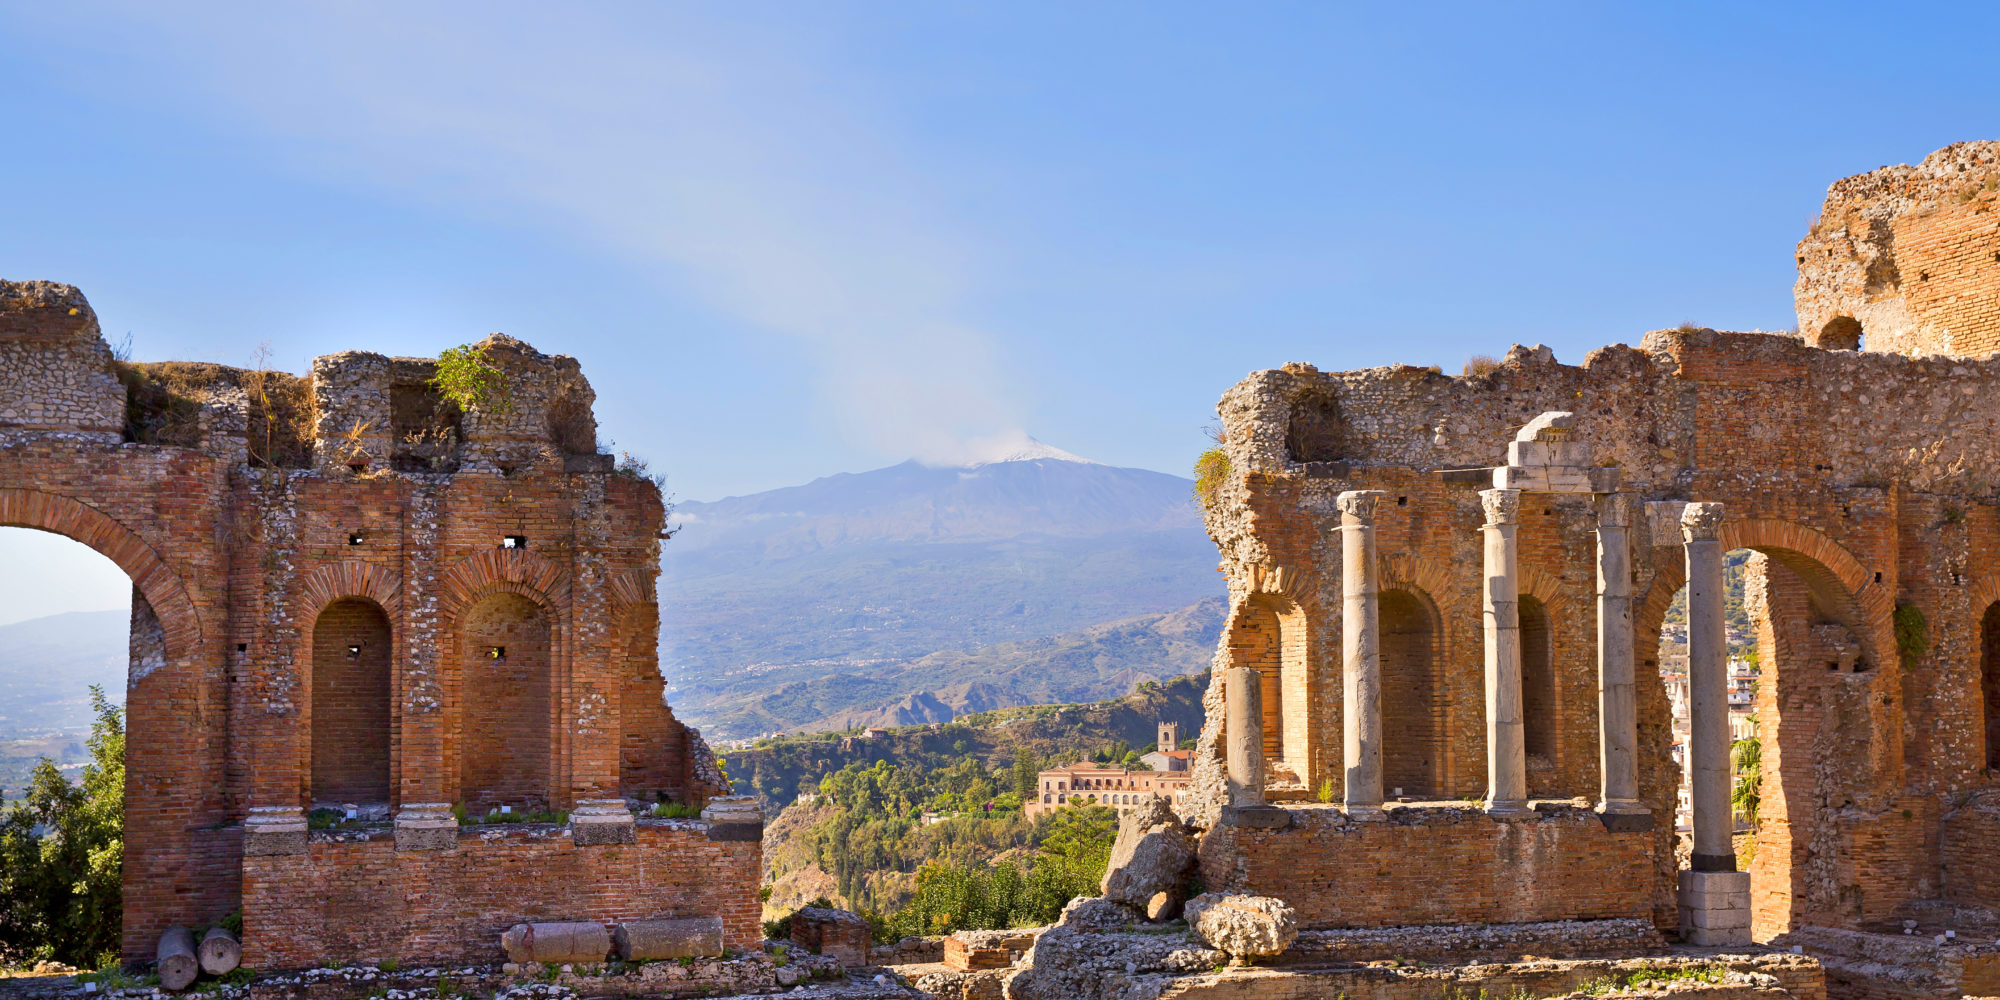 Taormina is famous worldwide for the view yoou can enjoy of the beautiful Mediterranean sea and on the Mount Etna, the highest active Vulcano in Europe.